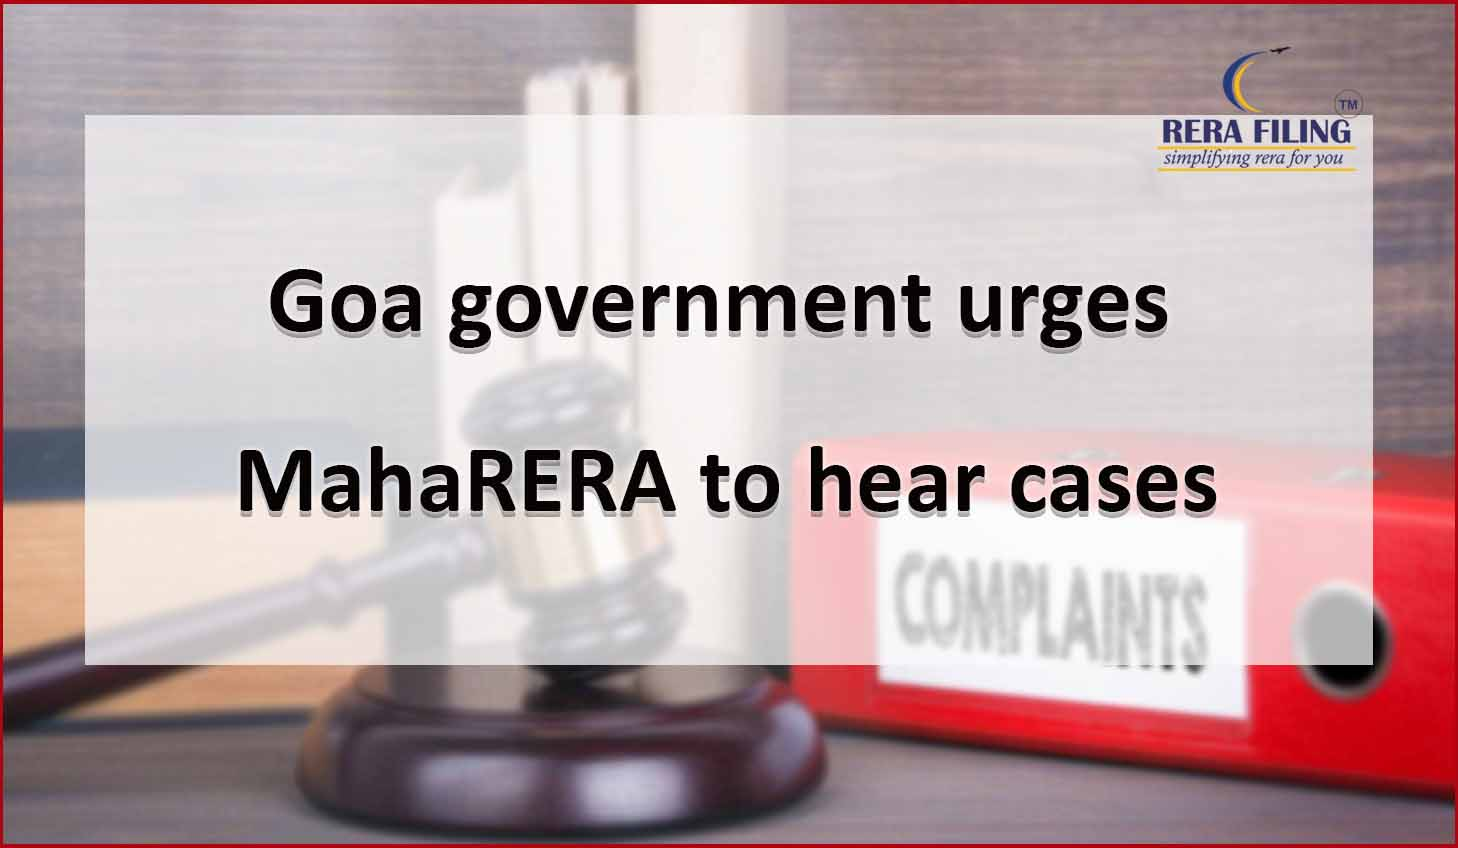 Goa government urges MahaRERA to hear cases